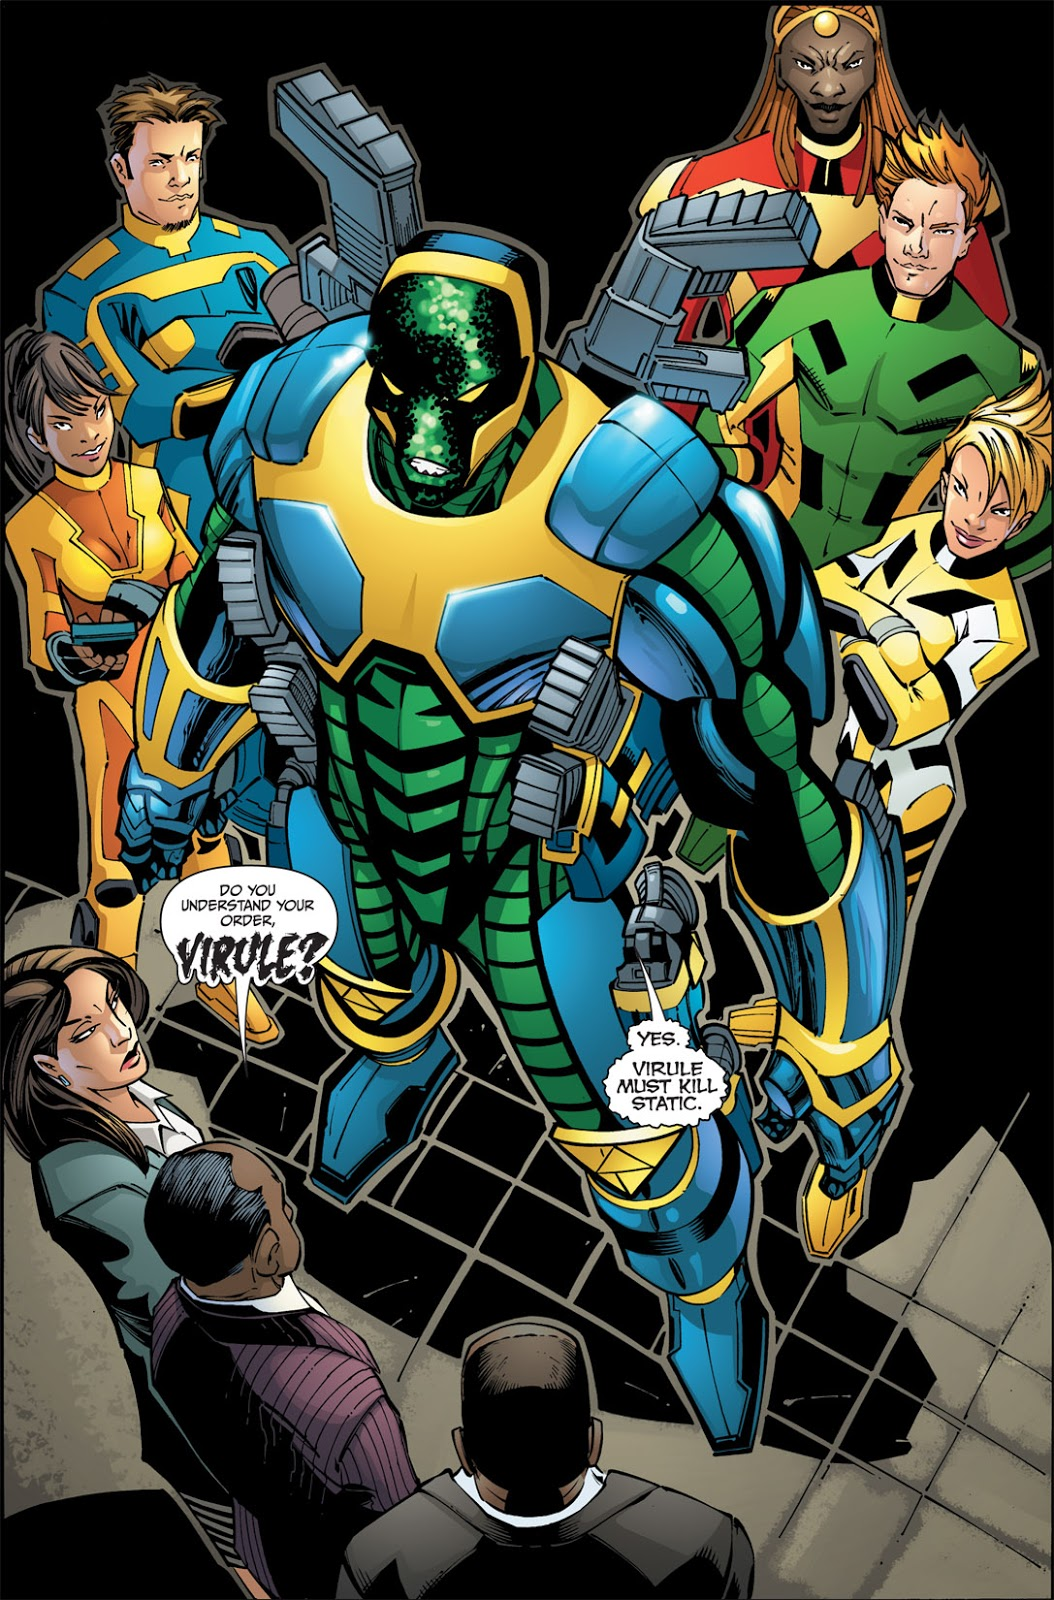 In 'Static Shock' (2011) #1, Virule is selected by the Slate gang to take out Static.